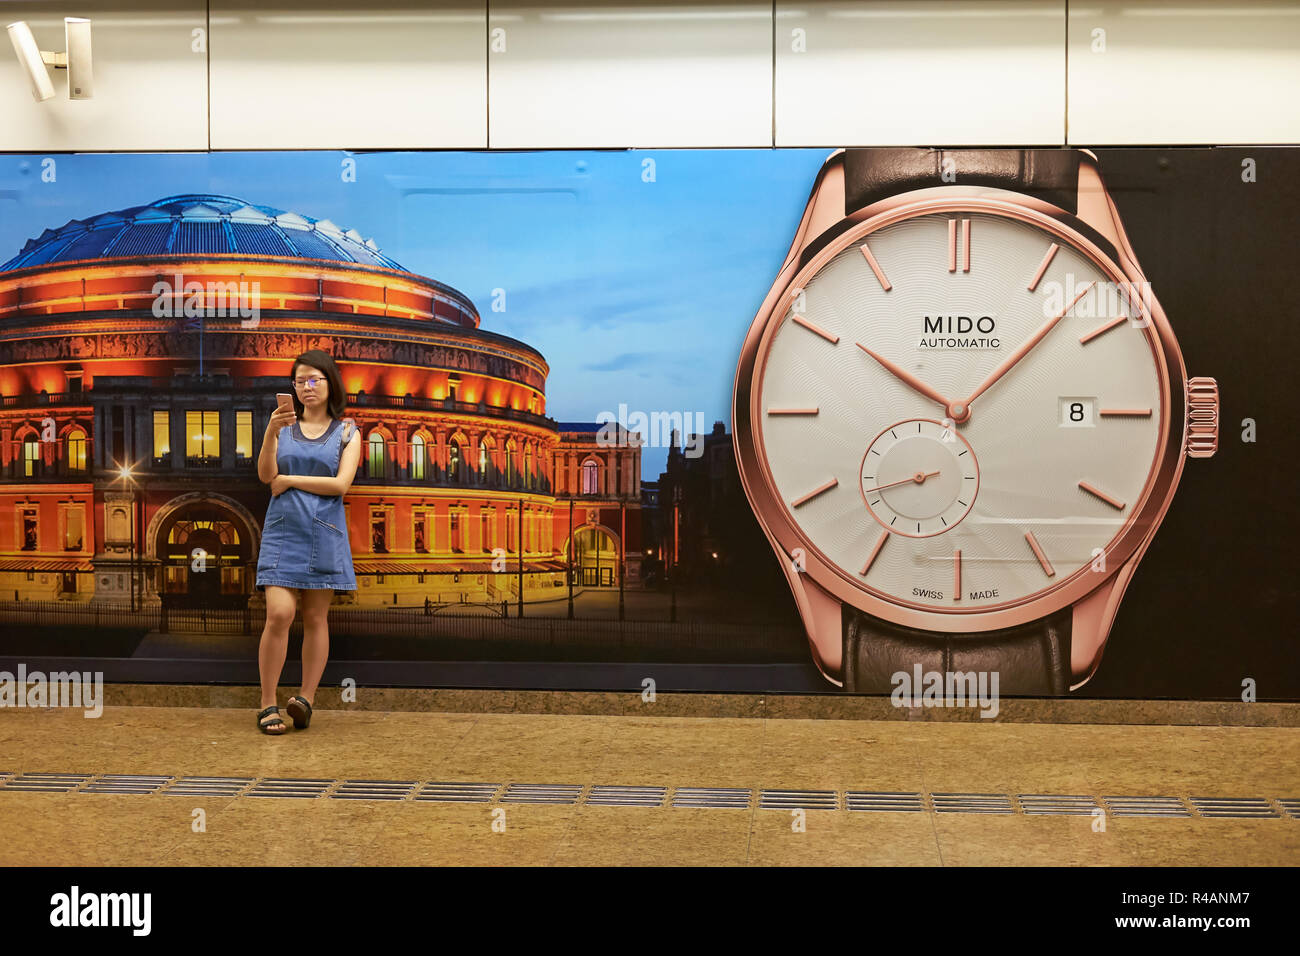 A girls busy with her mobile phone in front of a watch advertisement in Chinatown MRT station in Singapore - Stock Image